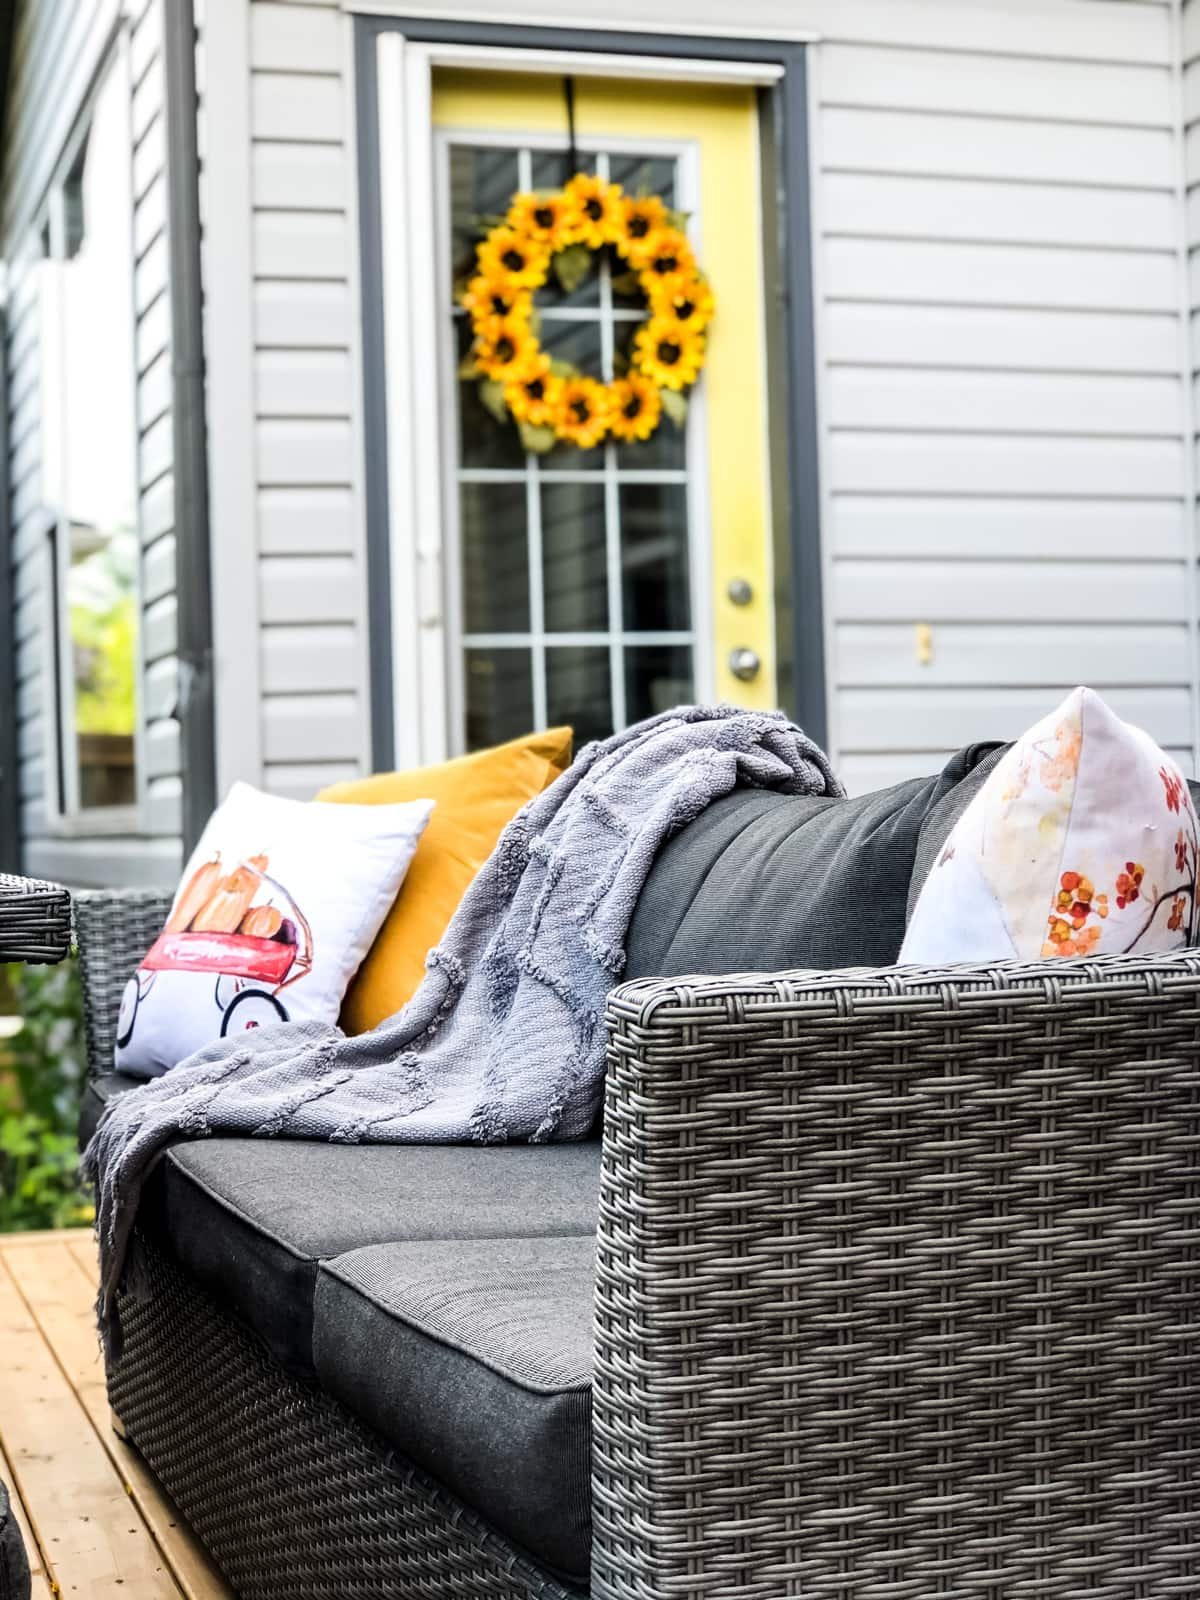 An outdoor couch with fall pillows and blankets